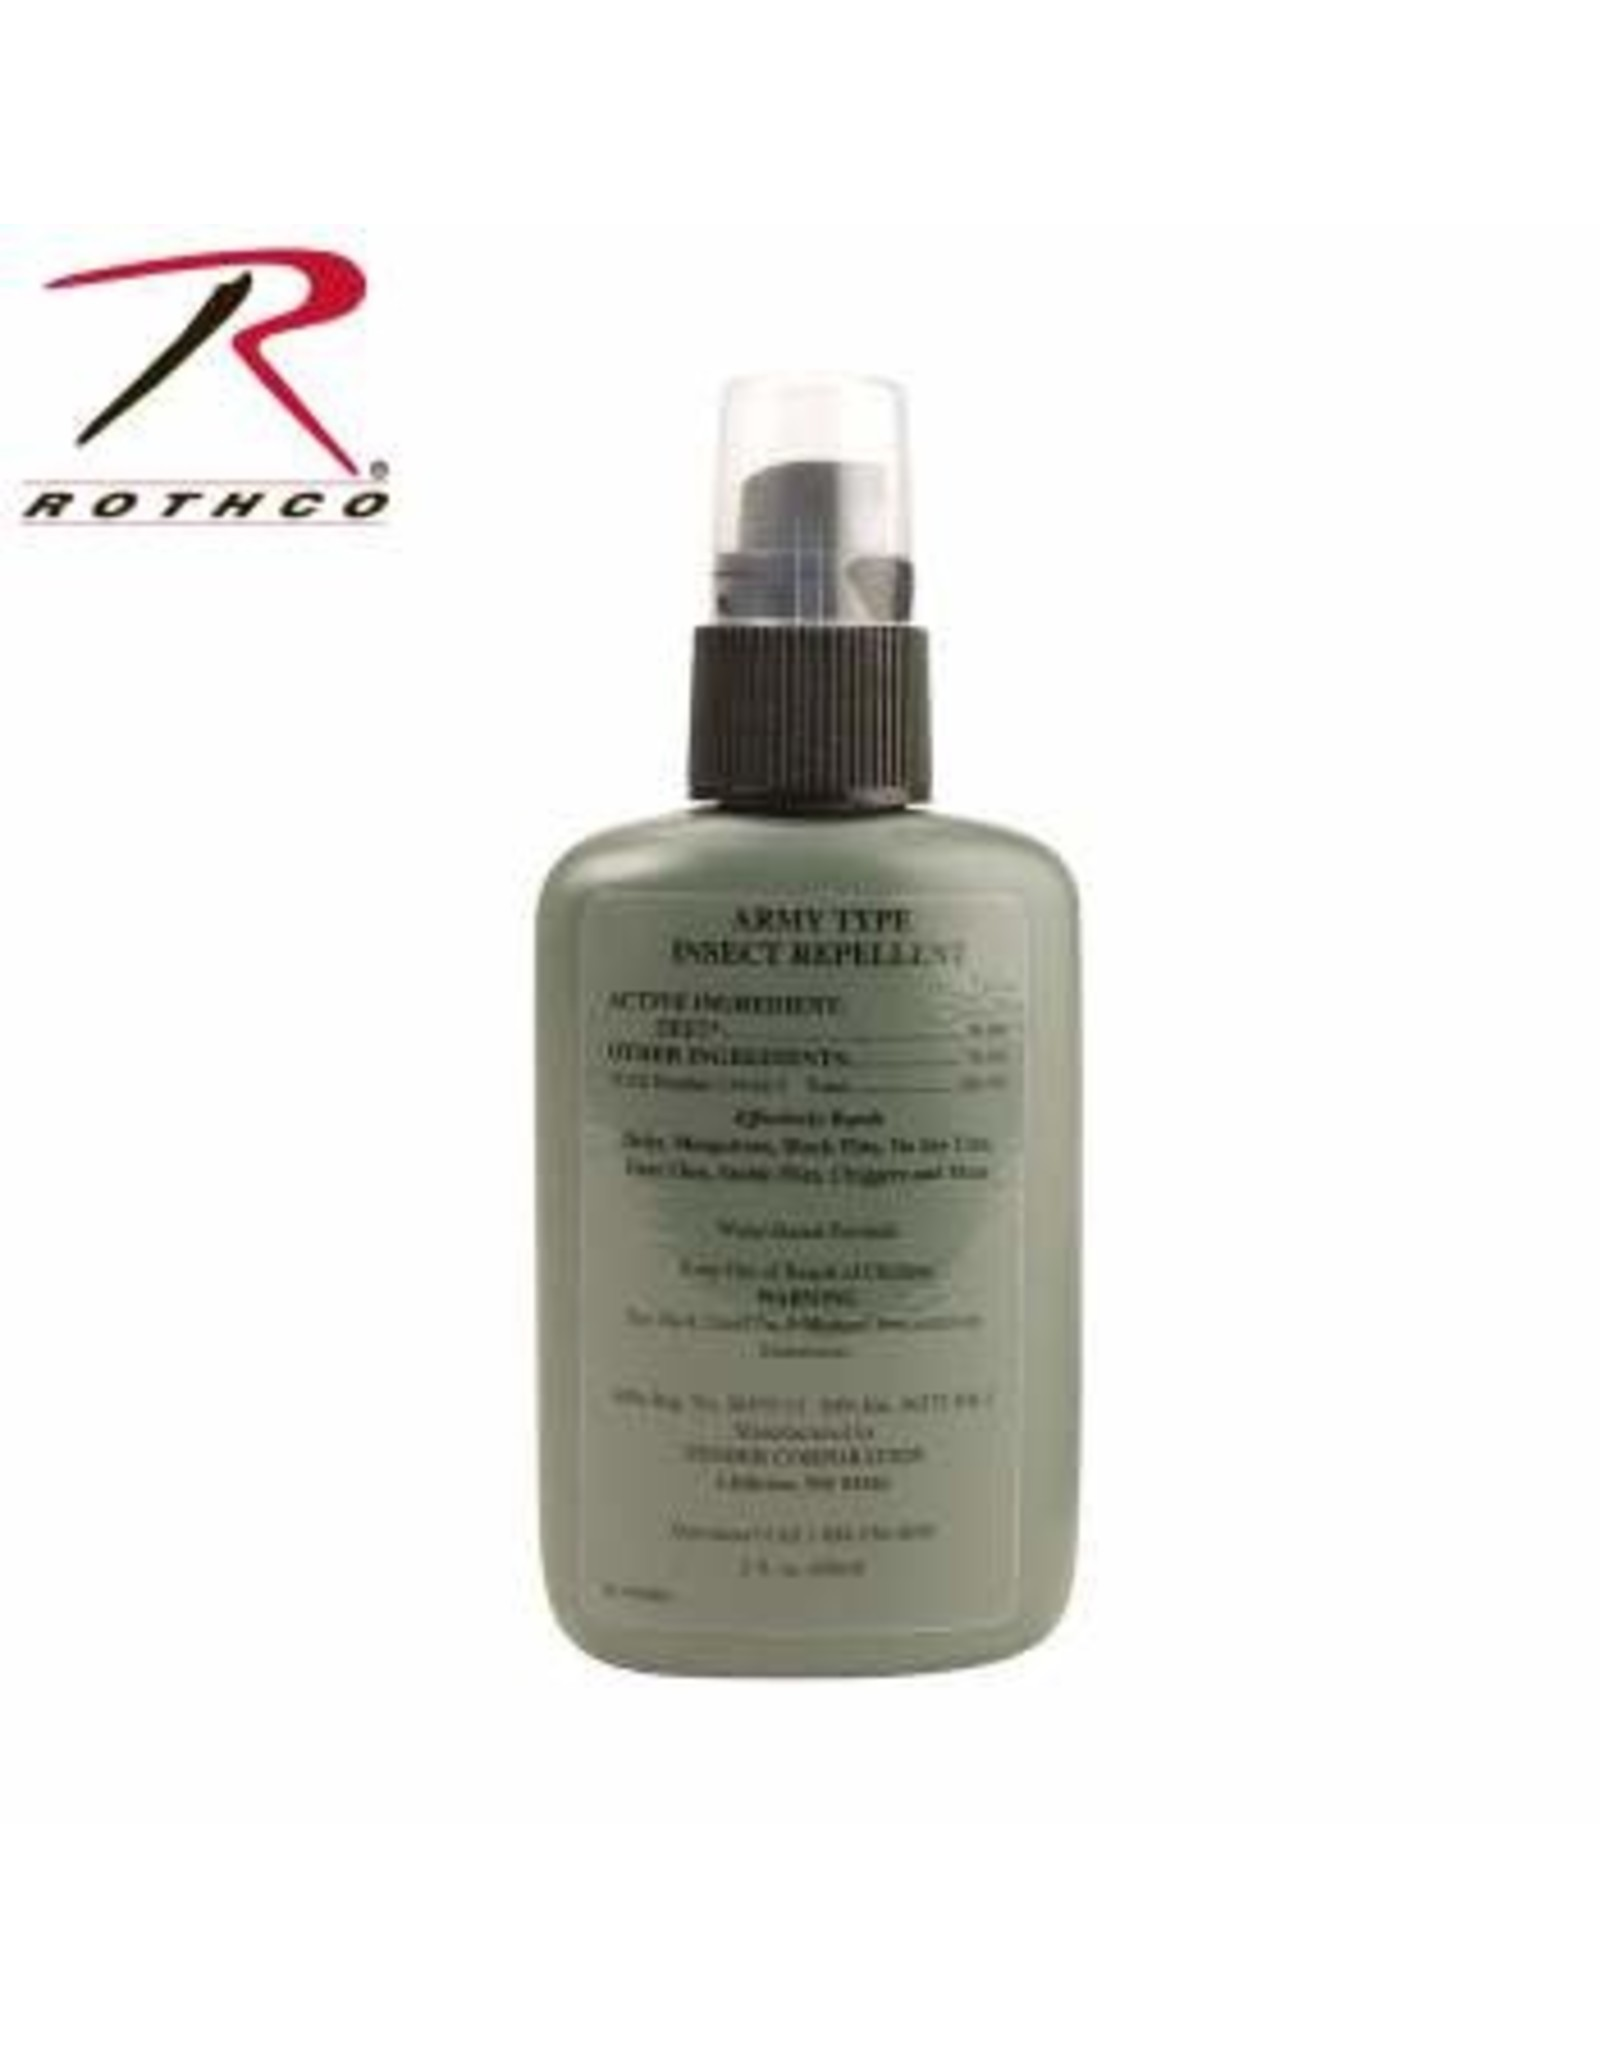 GI Army Type Insect Repellent